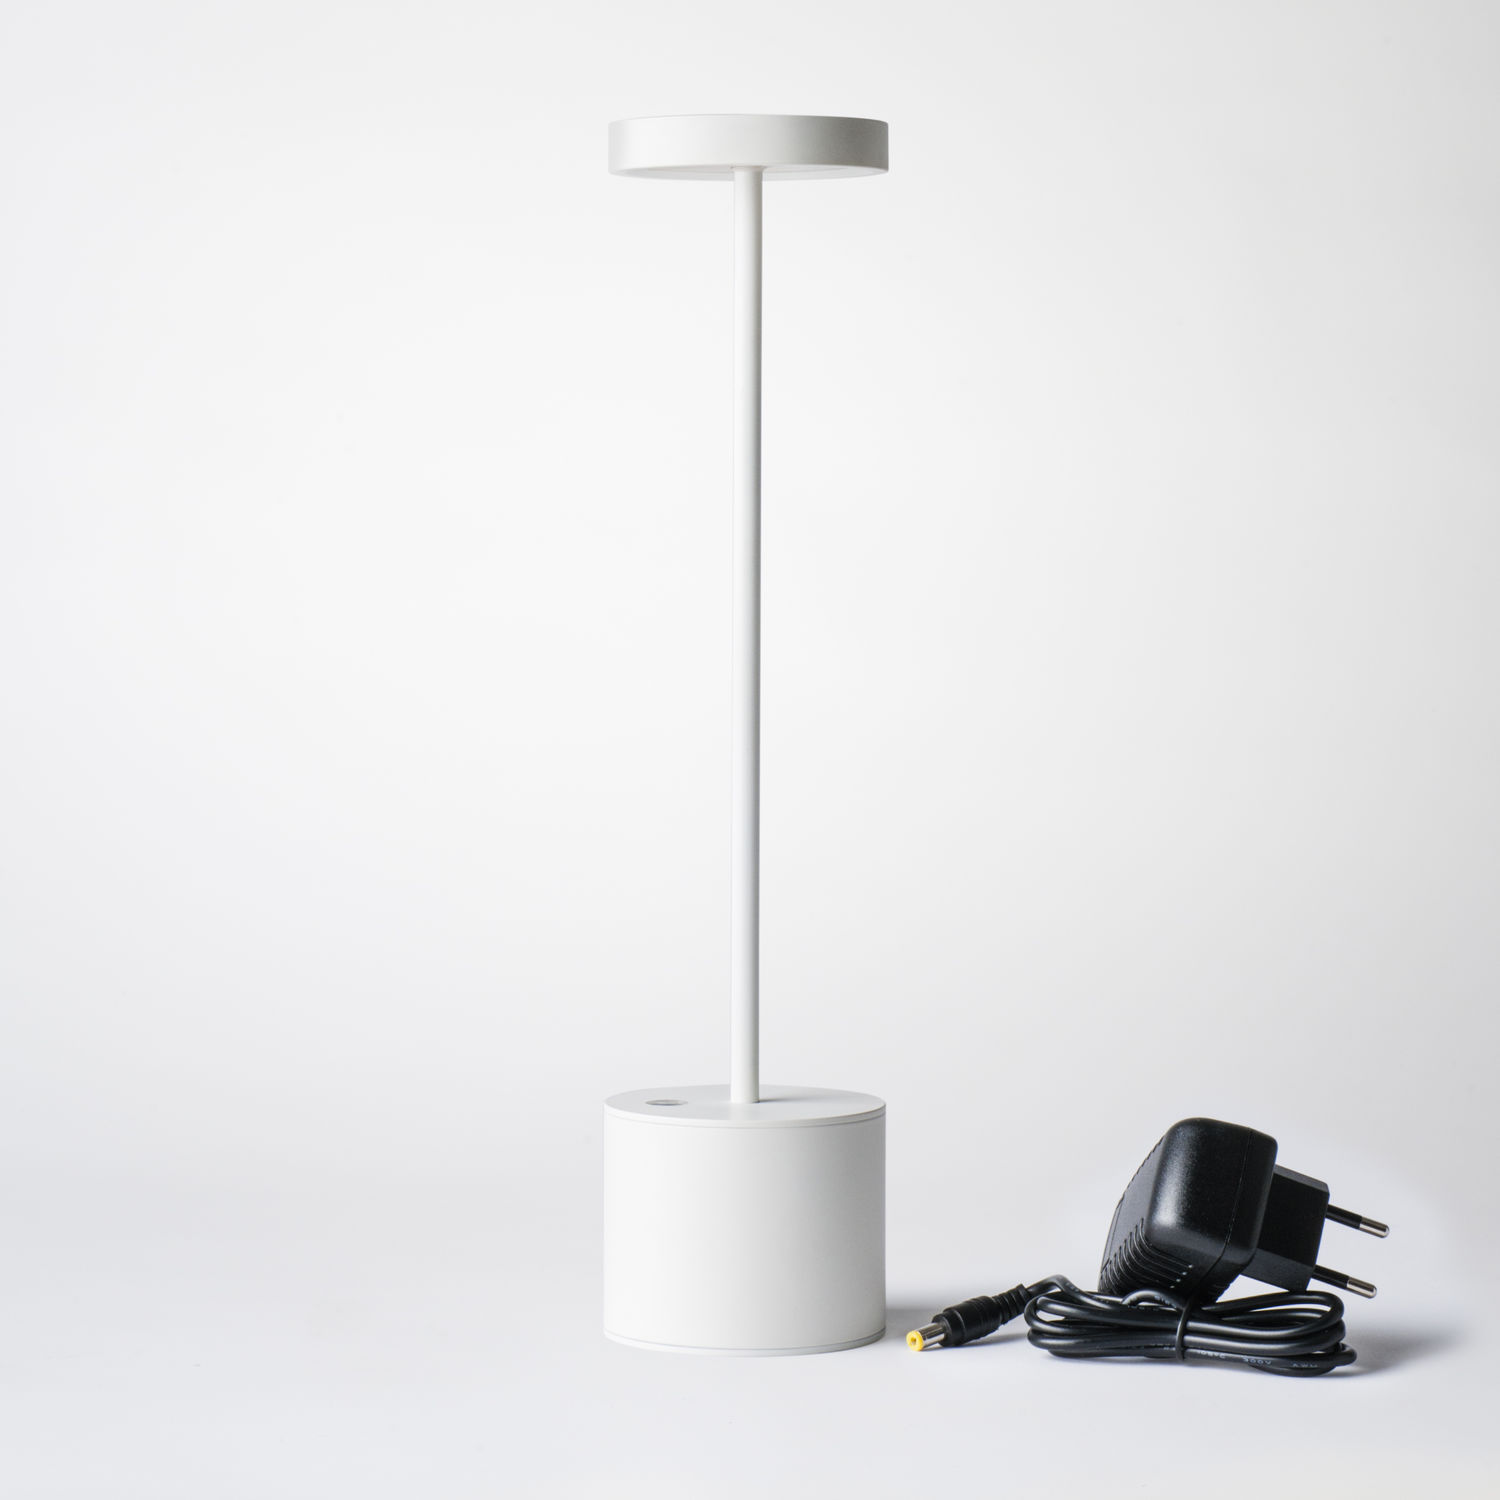 Küchenlampe Led Table Lamp Contemporary Painted Aluminum Wireless Luxciole